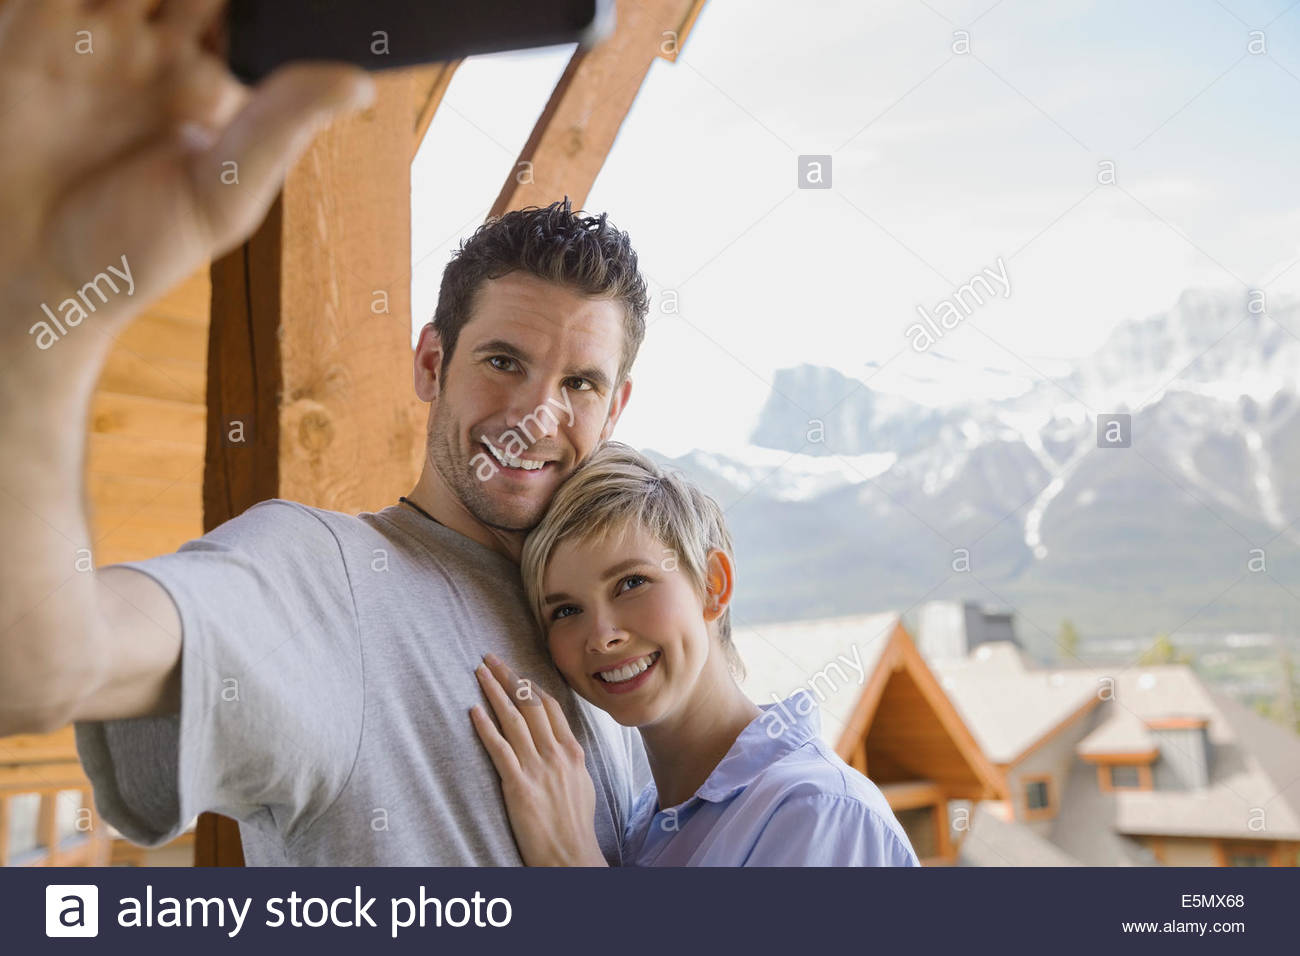 Couple taking selfie on balcony with mountain view Stock Photo